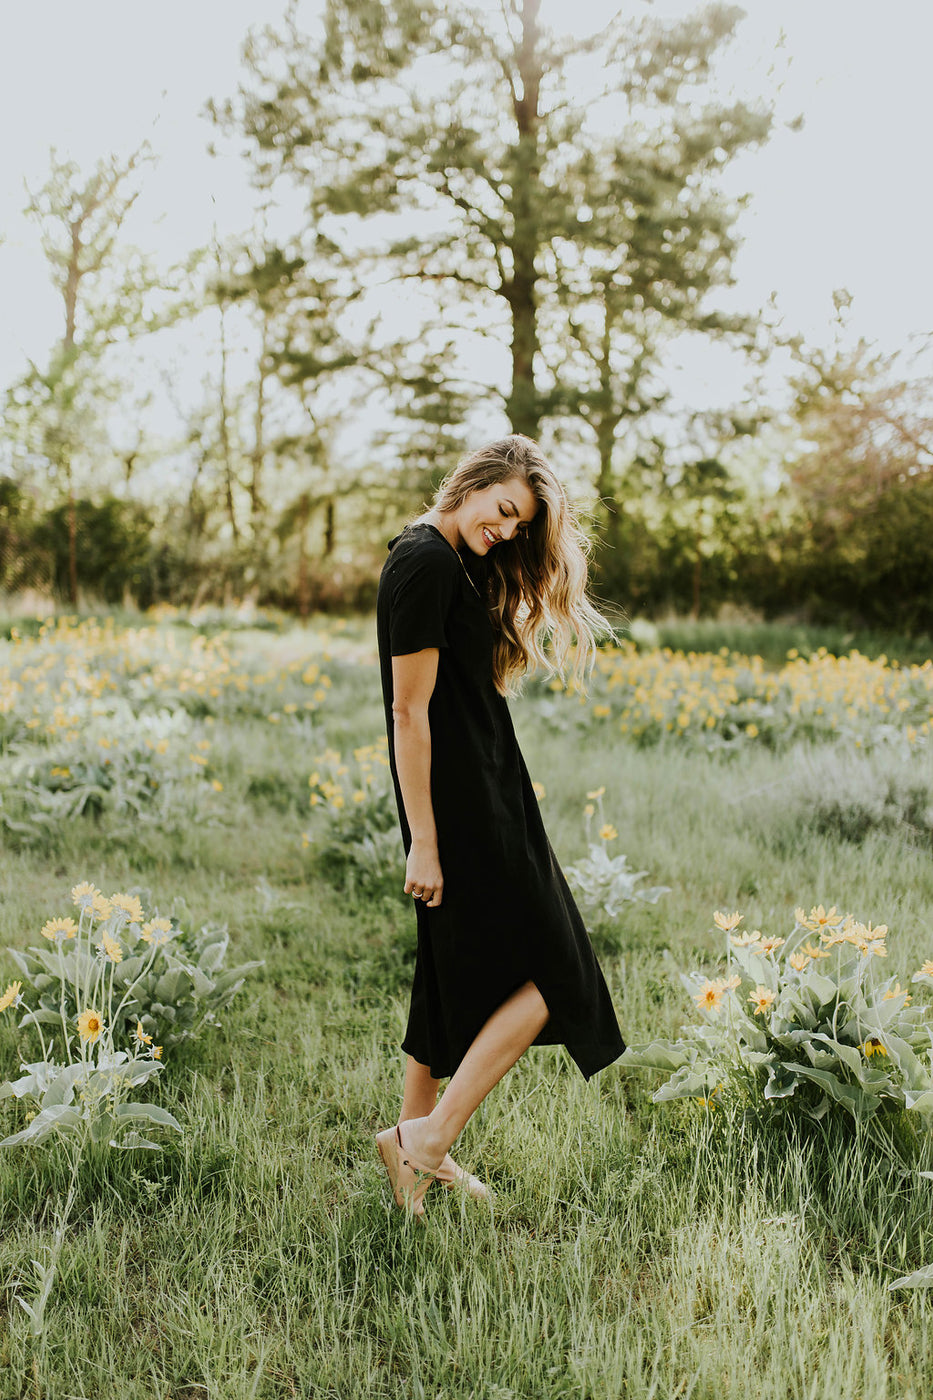 Modest Church Outfit Ideas For Women | ROOLEE